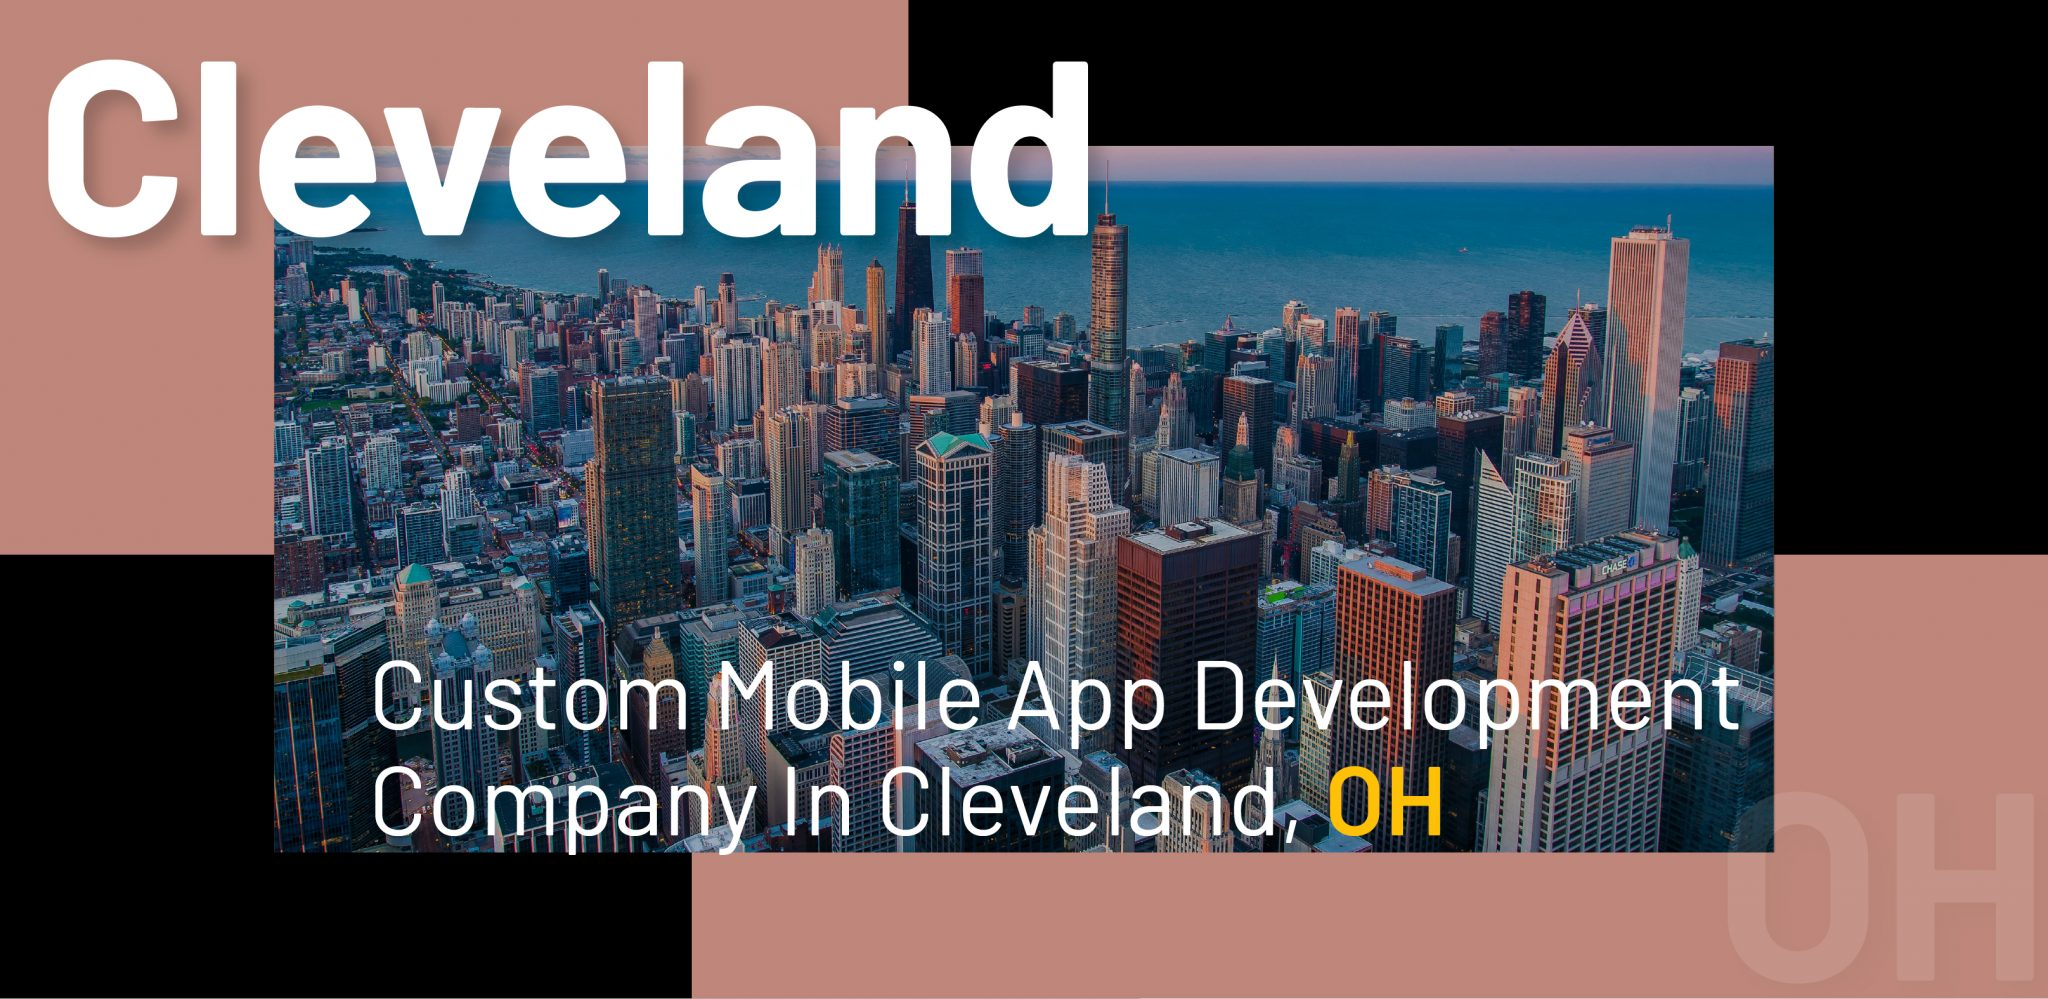 Custom Mobile App Development Company in Cleveland, OH - WebClues Infotech